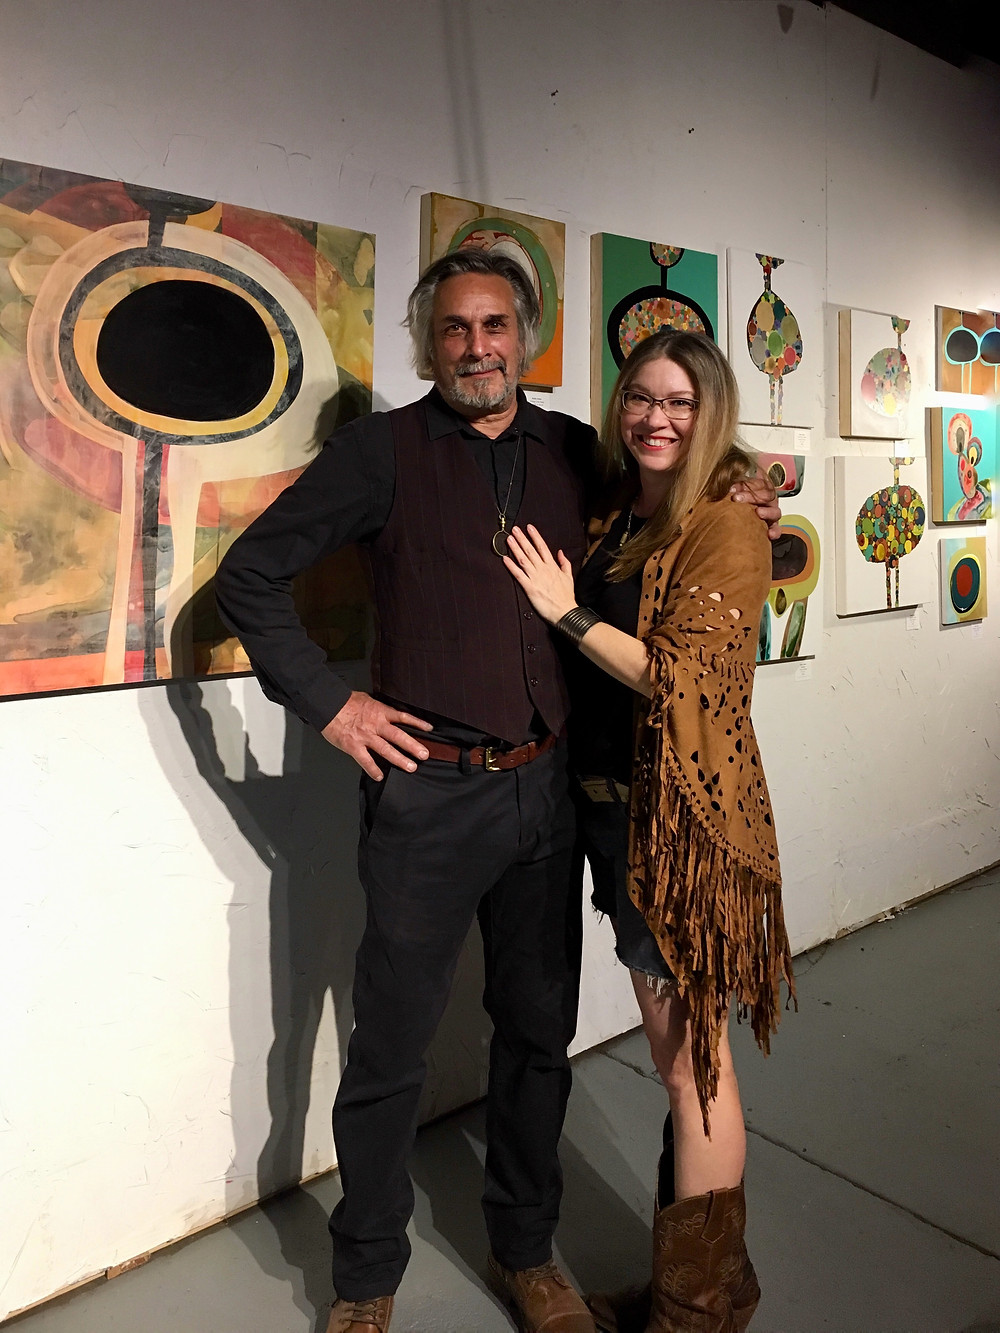 Sculptor Sean Guerrero and Painter Robin Arthur at an exhibition of her abstract paintings